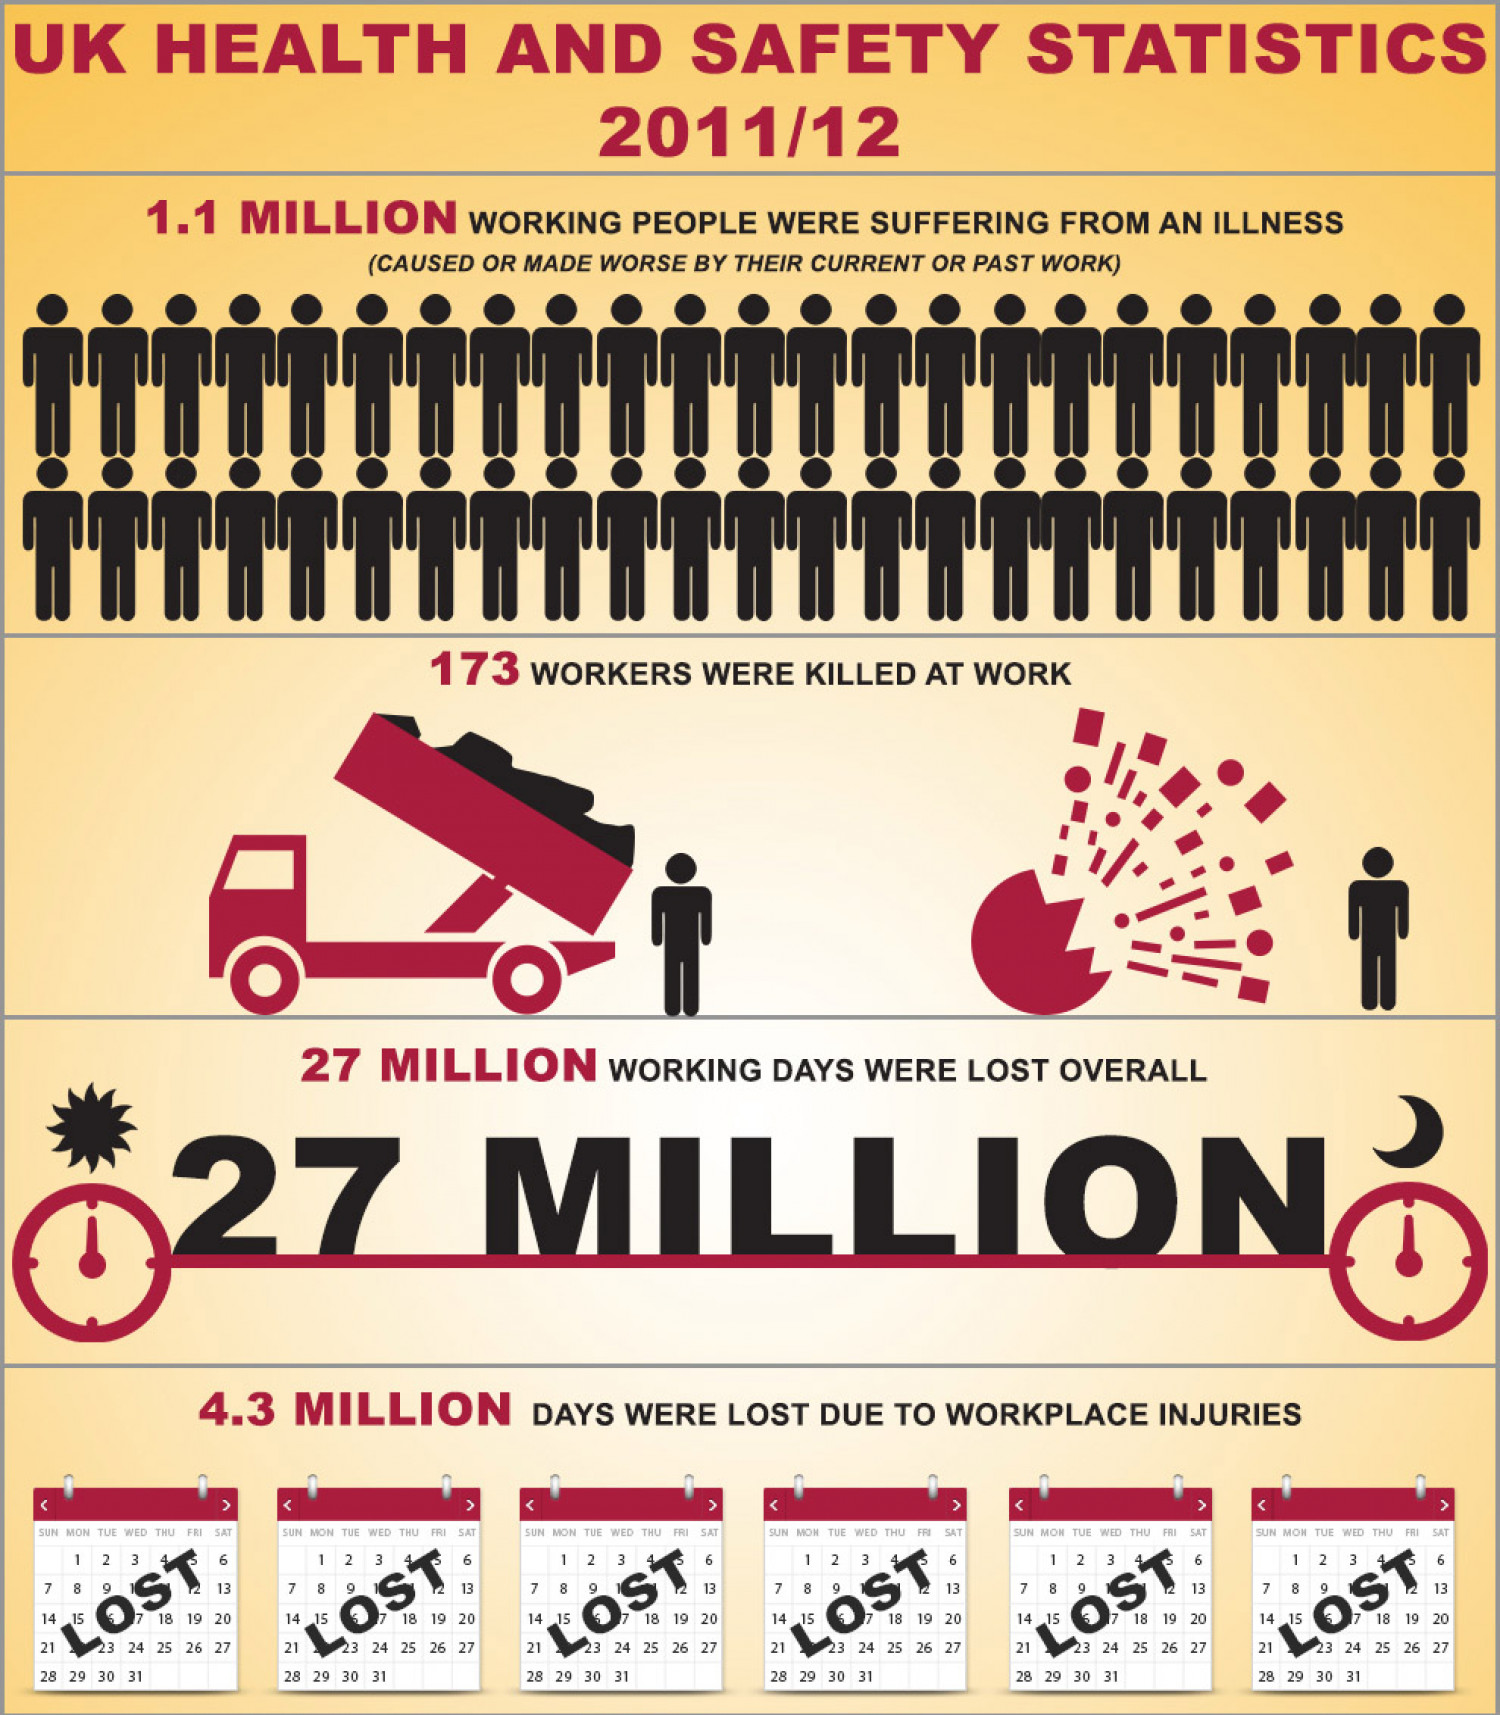 UK Health and Safety Statistics 2011/12 Infographic